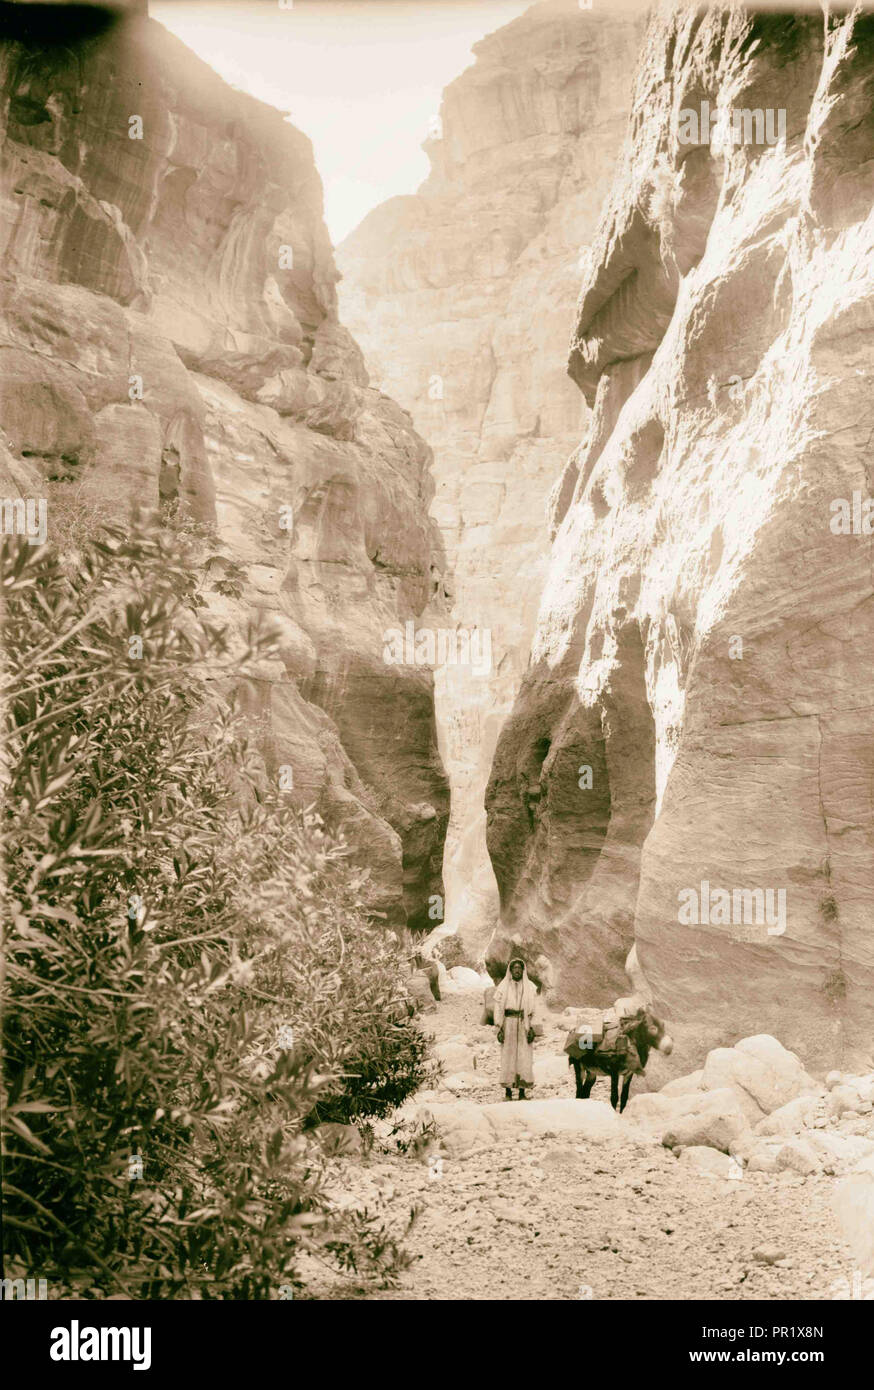 Petra, Sik entrée. 1898, Jordanie, Petra, la ville disparue Photo Stock